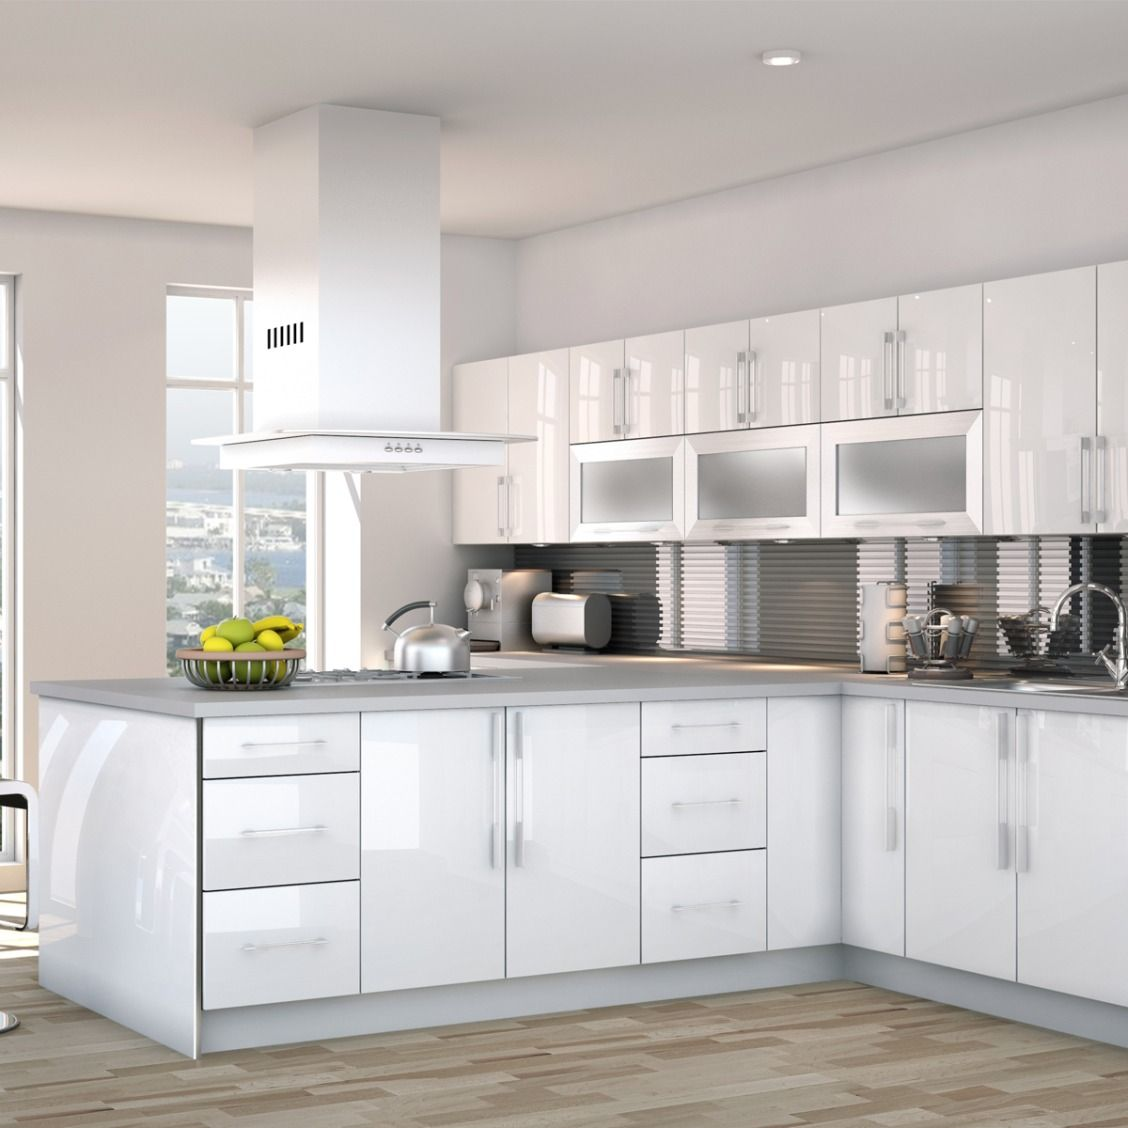 Matte Black Is So 2016 How About White Gloss Instead The Cutler Cabinet Collection Is Here Shop Kitchen Cabinets White Gloss Cabinets Top Kitchen Cabinets